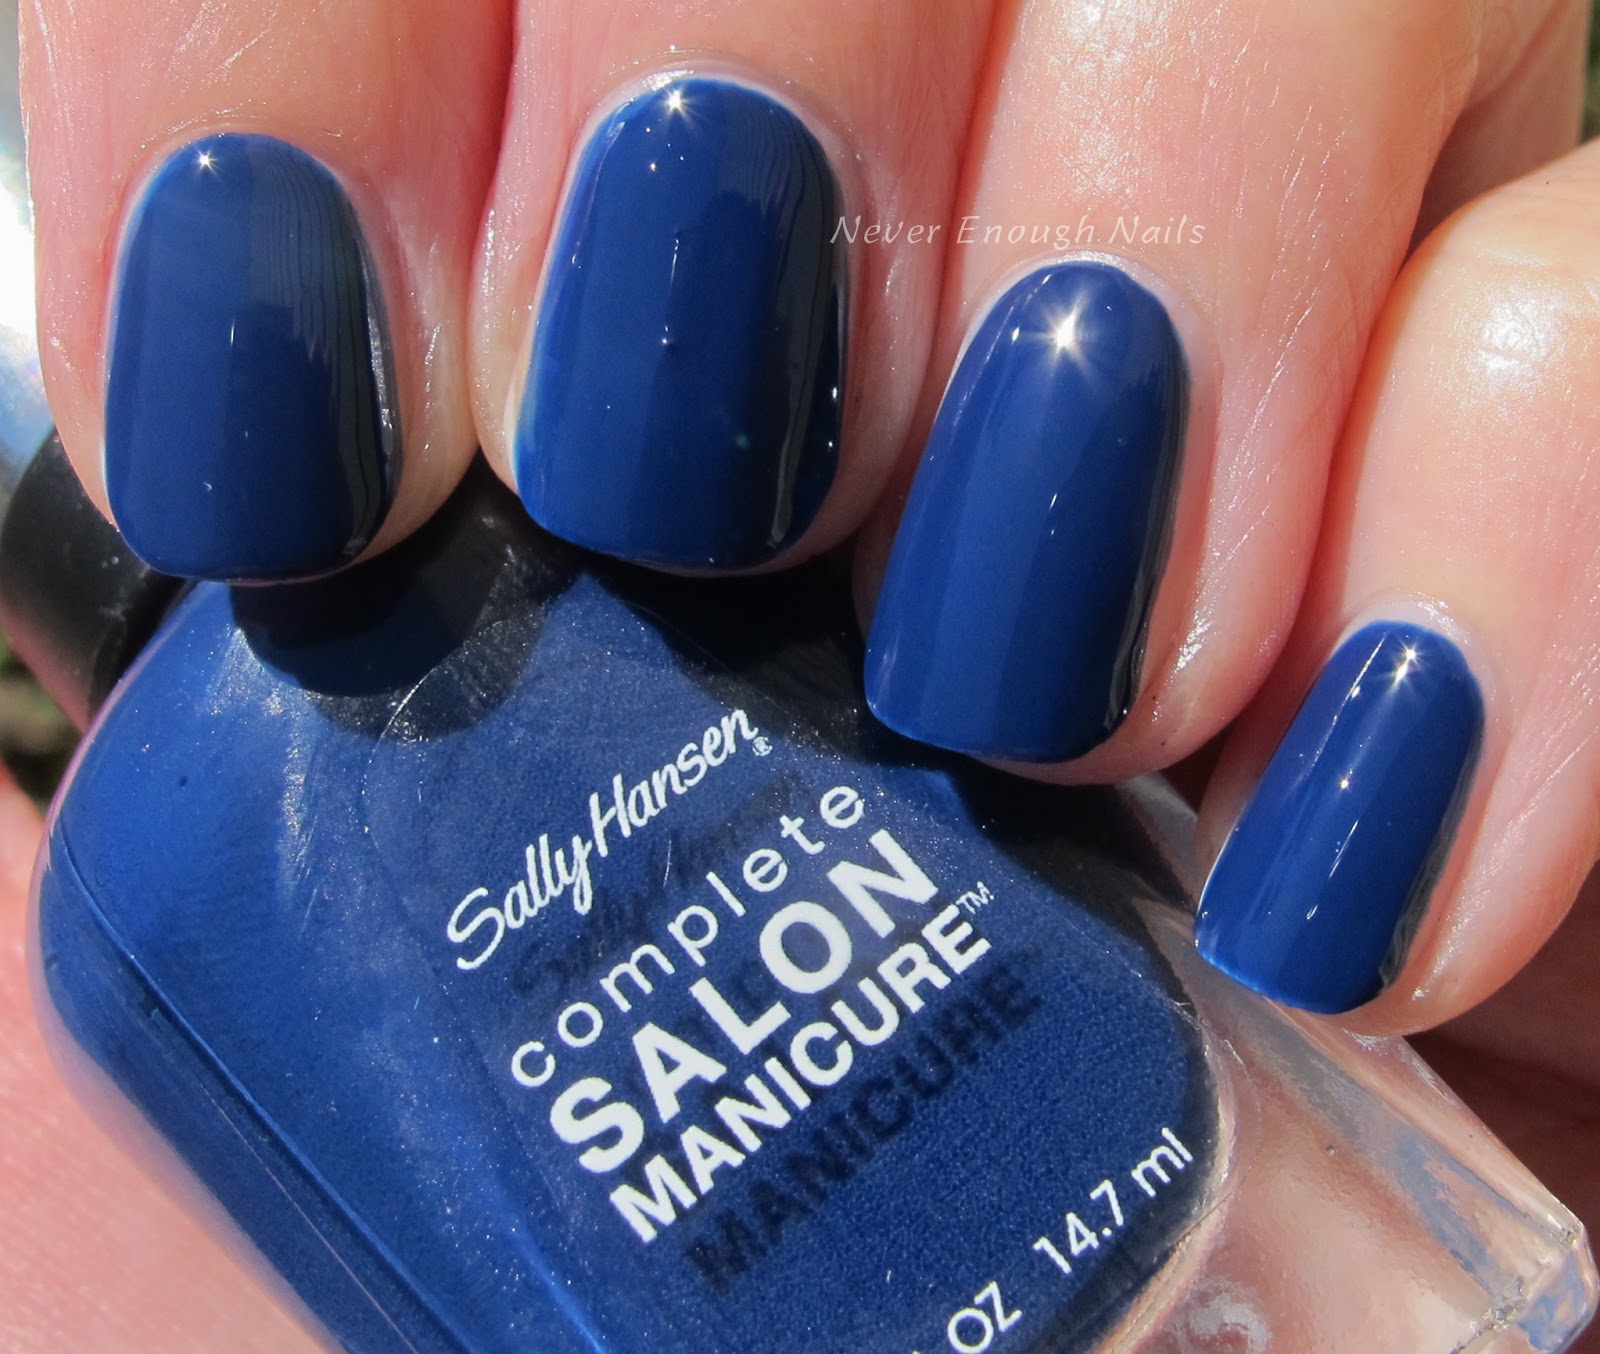 Sally Hansen Midnight Affair Is A Deep Nearly Navy Blue Creme I Would Say It S Maybe Shade Or Two Lighter Than True And Funny